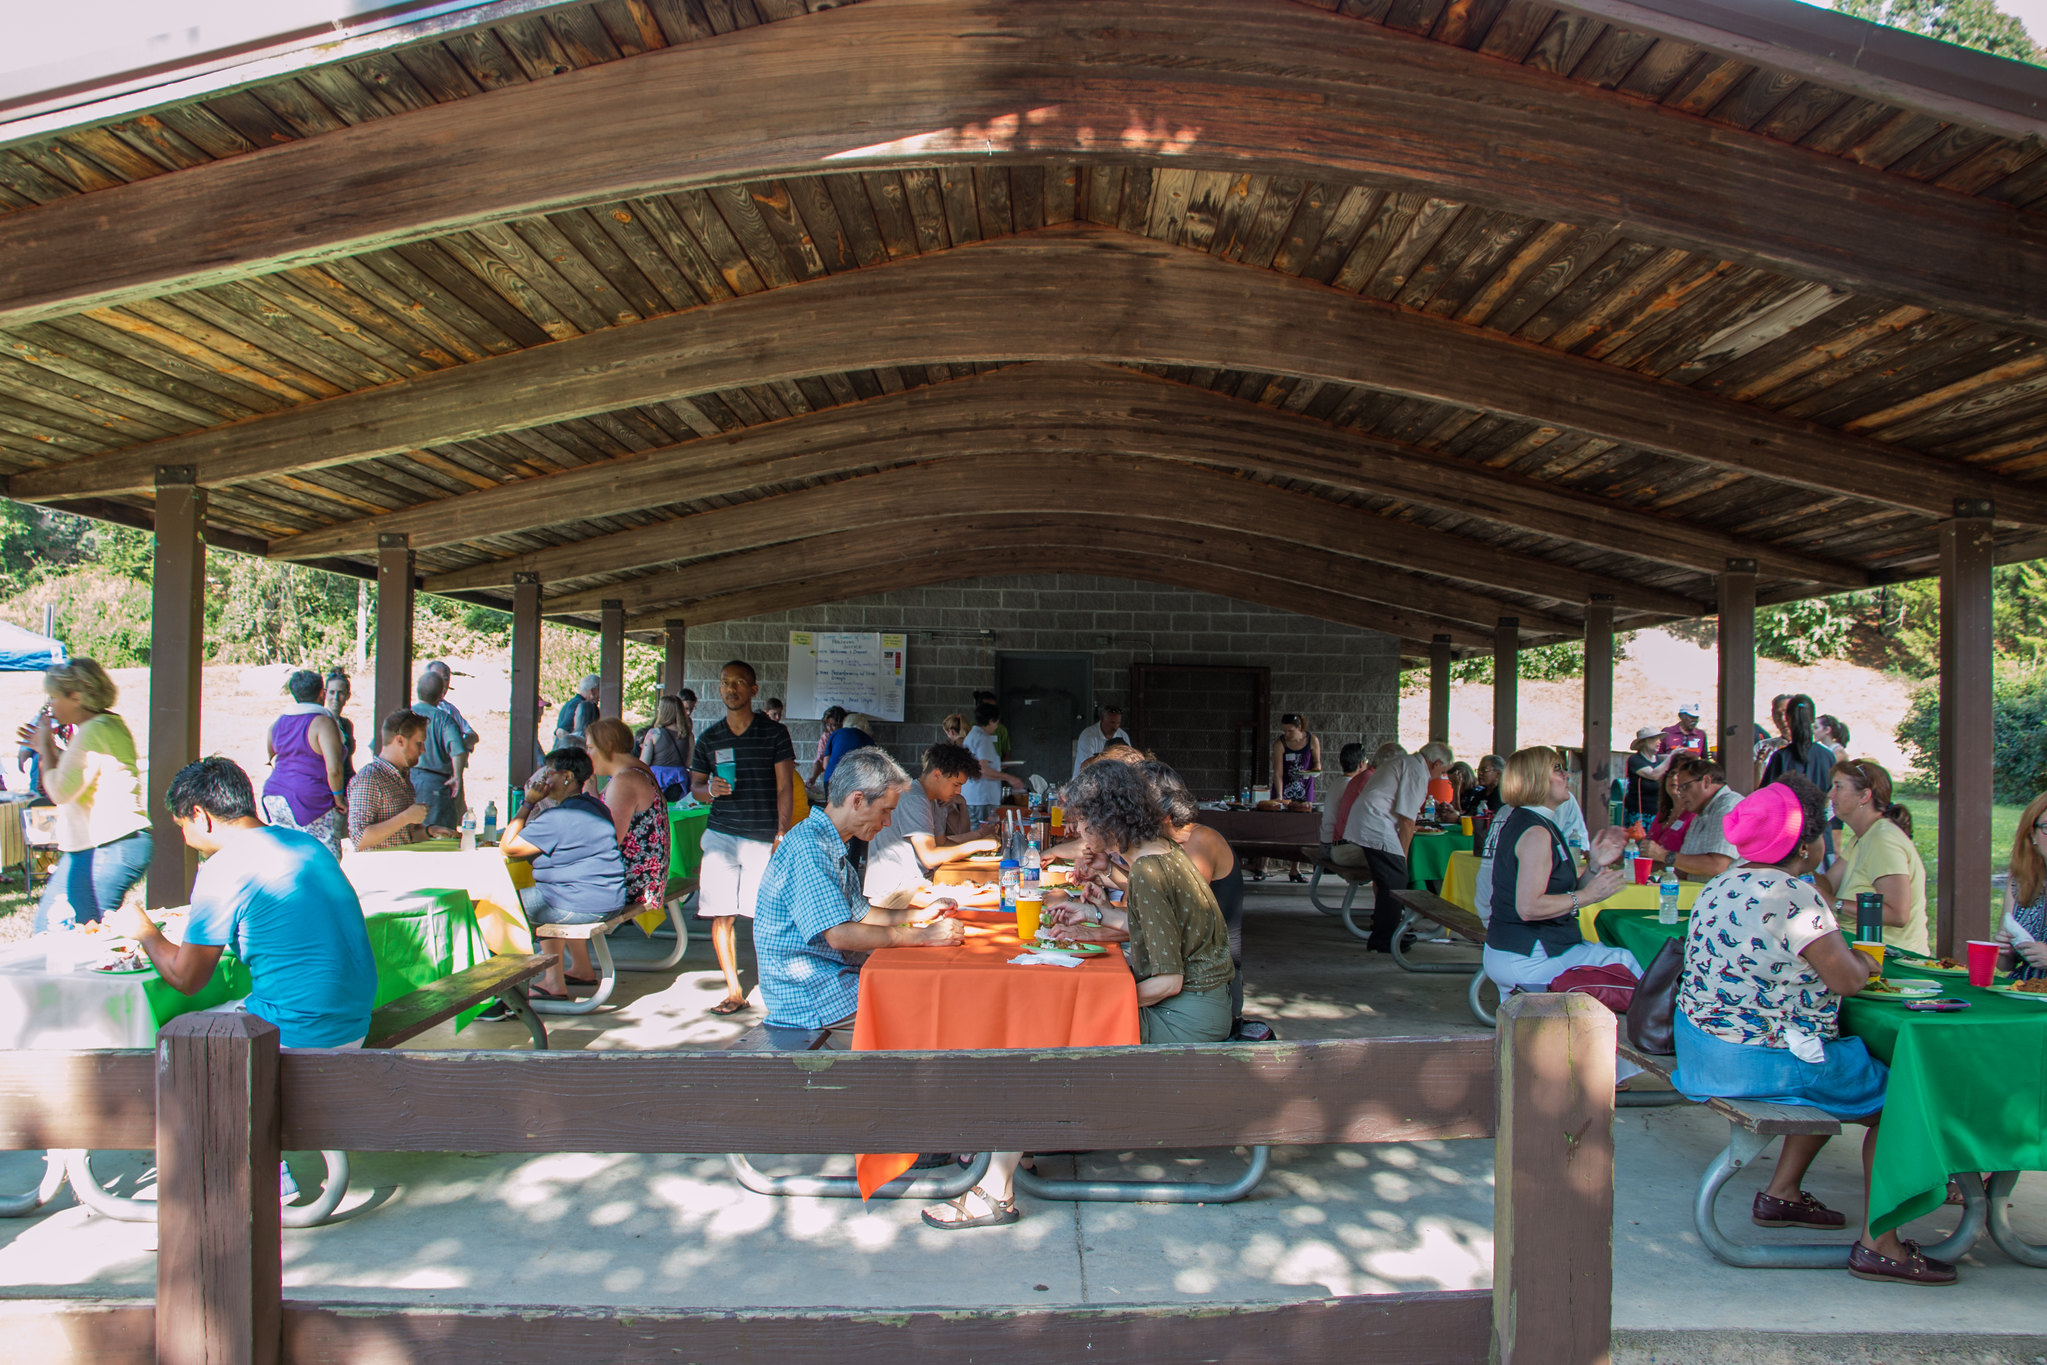 A photo of the Nellie's Cave Park picnic shelter. A large crowd of people sit inside the shelter at various picnic tables covered with bright tablecloths.